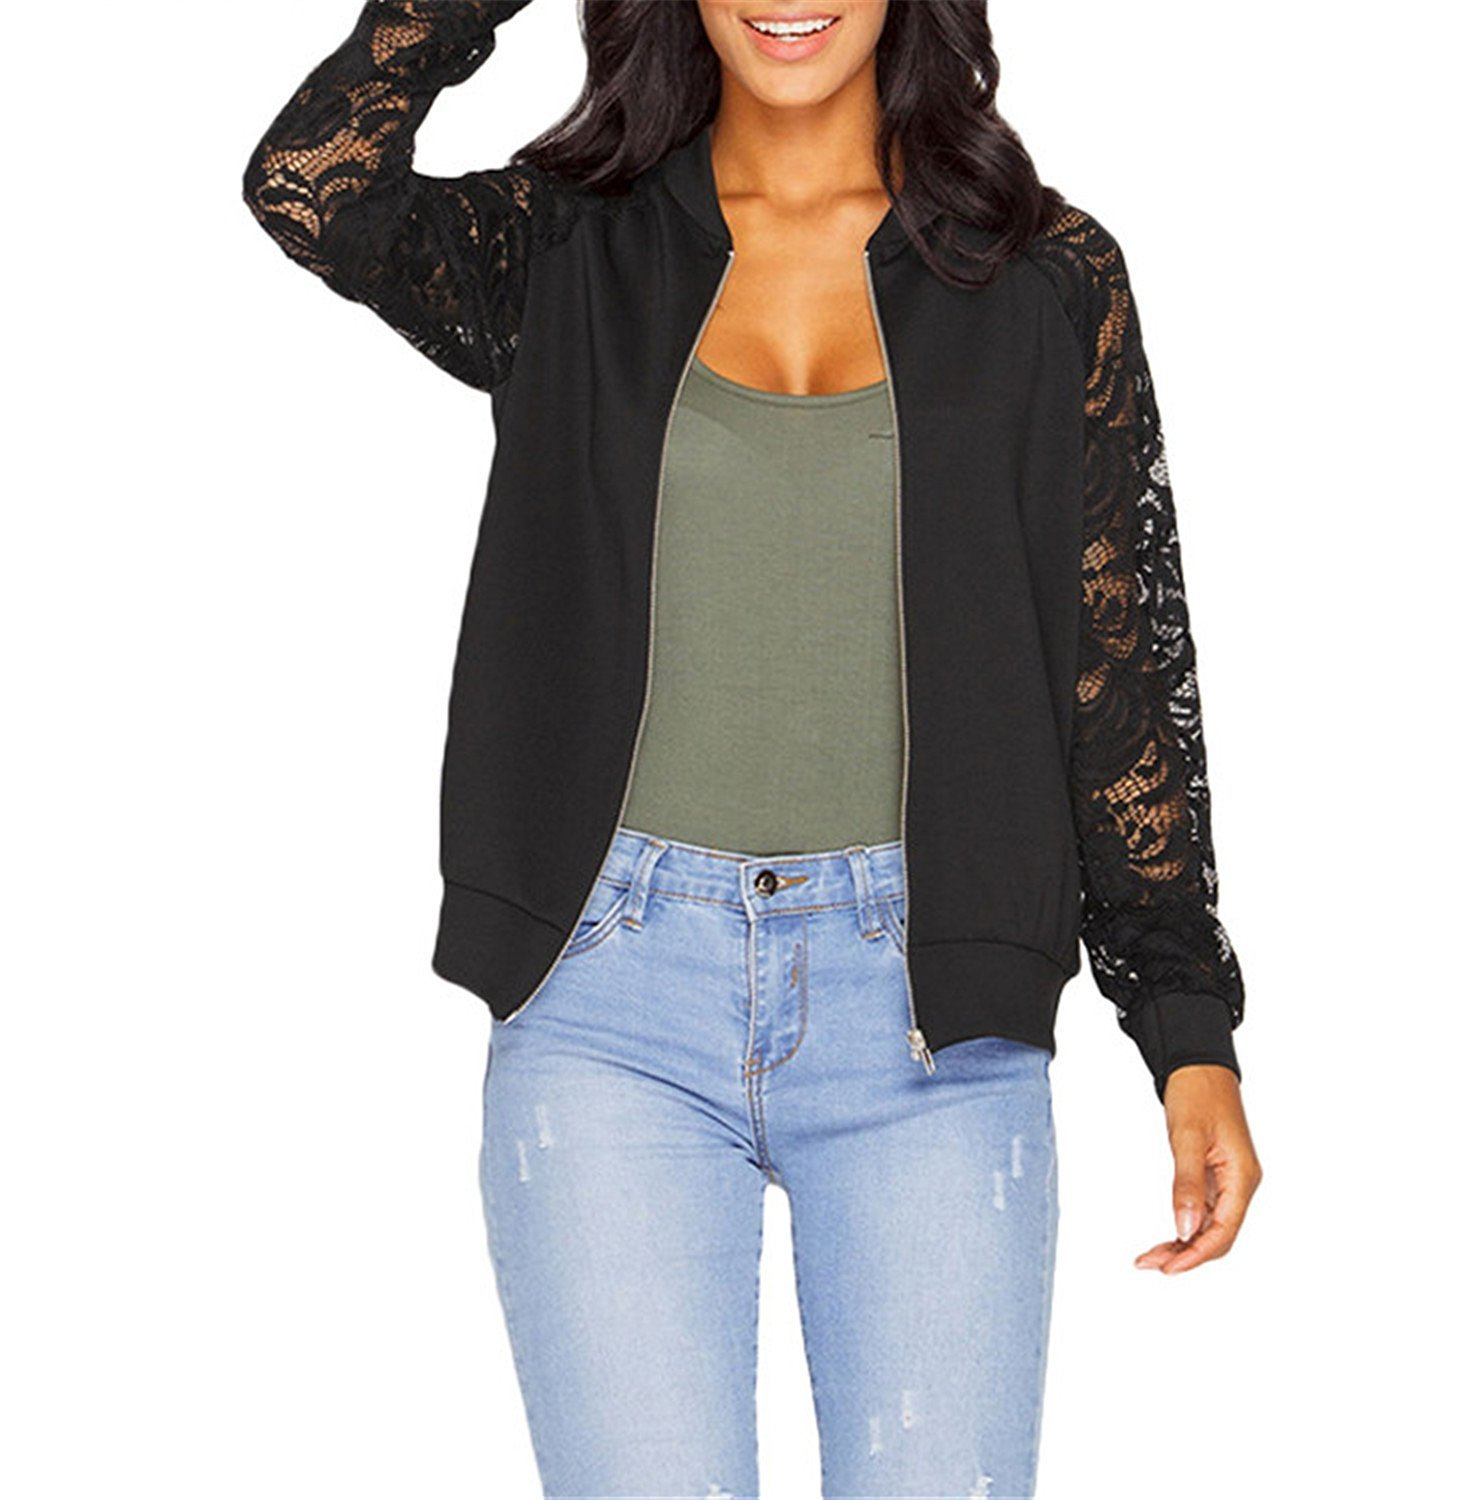 Toping Fine Women Jackets New Arrival Autumn Ladies Solid Lace Stitching Baseball Jacket Stand Collar Bomber Jacket WhiteX-Large